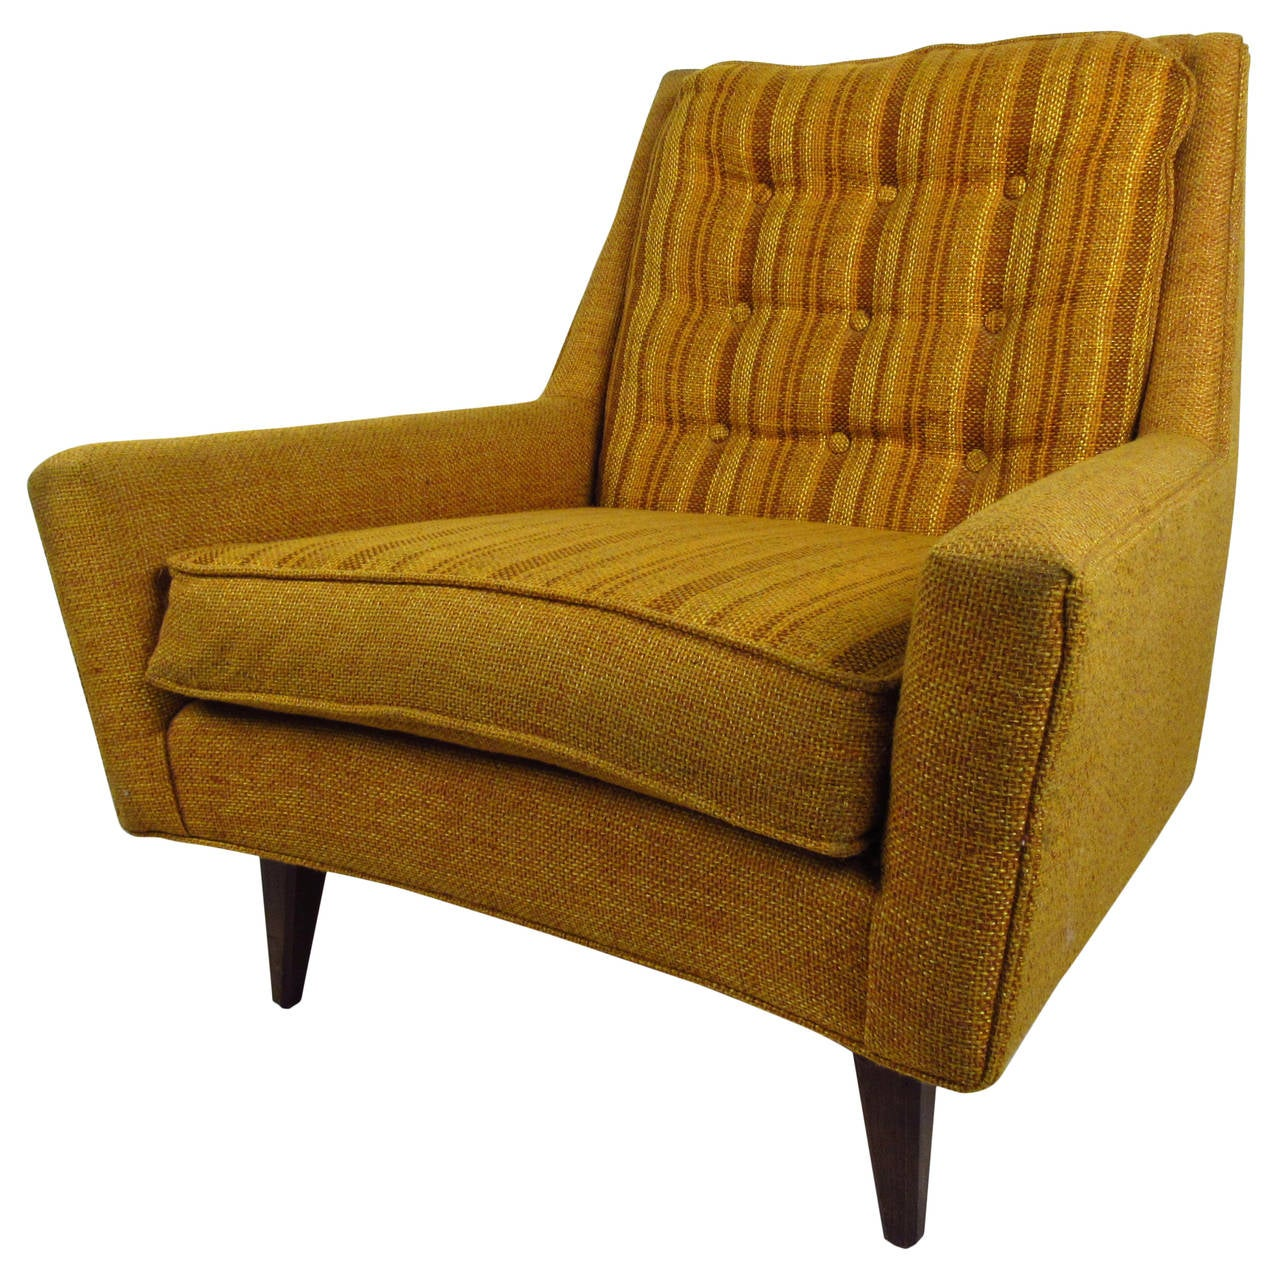 Mid Century Modern Upholstered Lounge Chair With Tufted Back